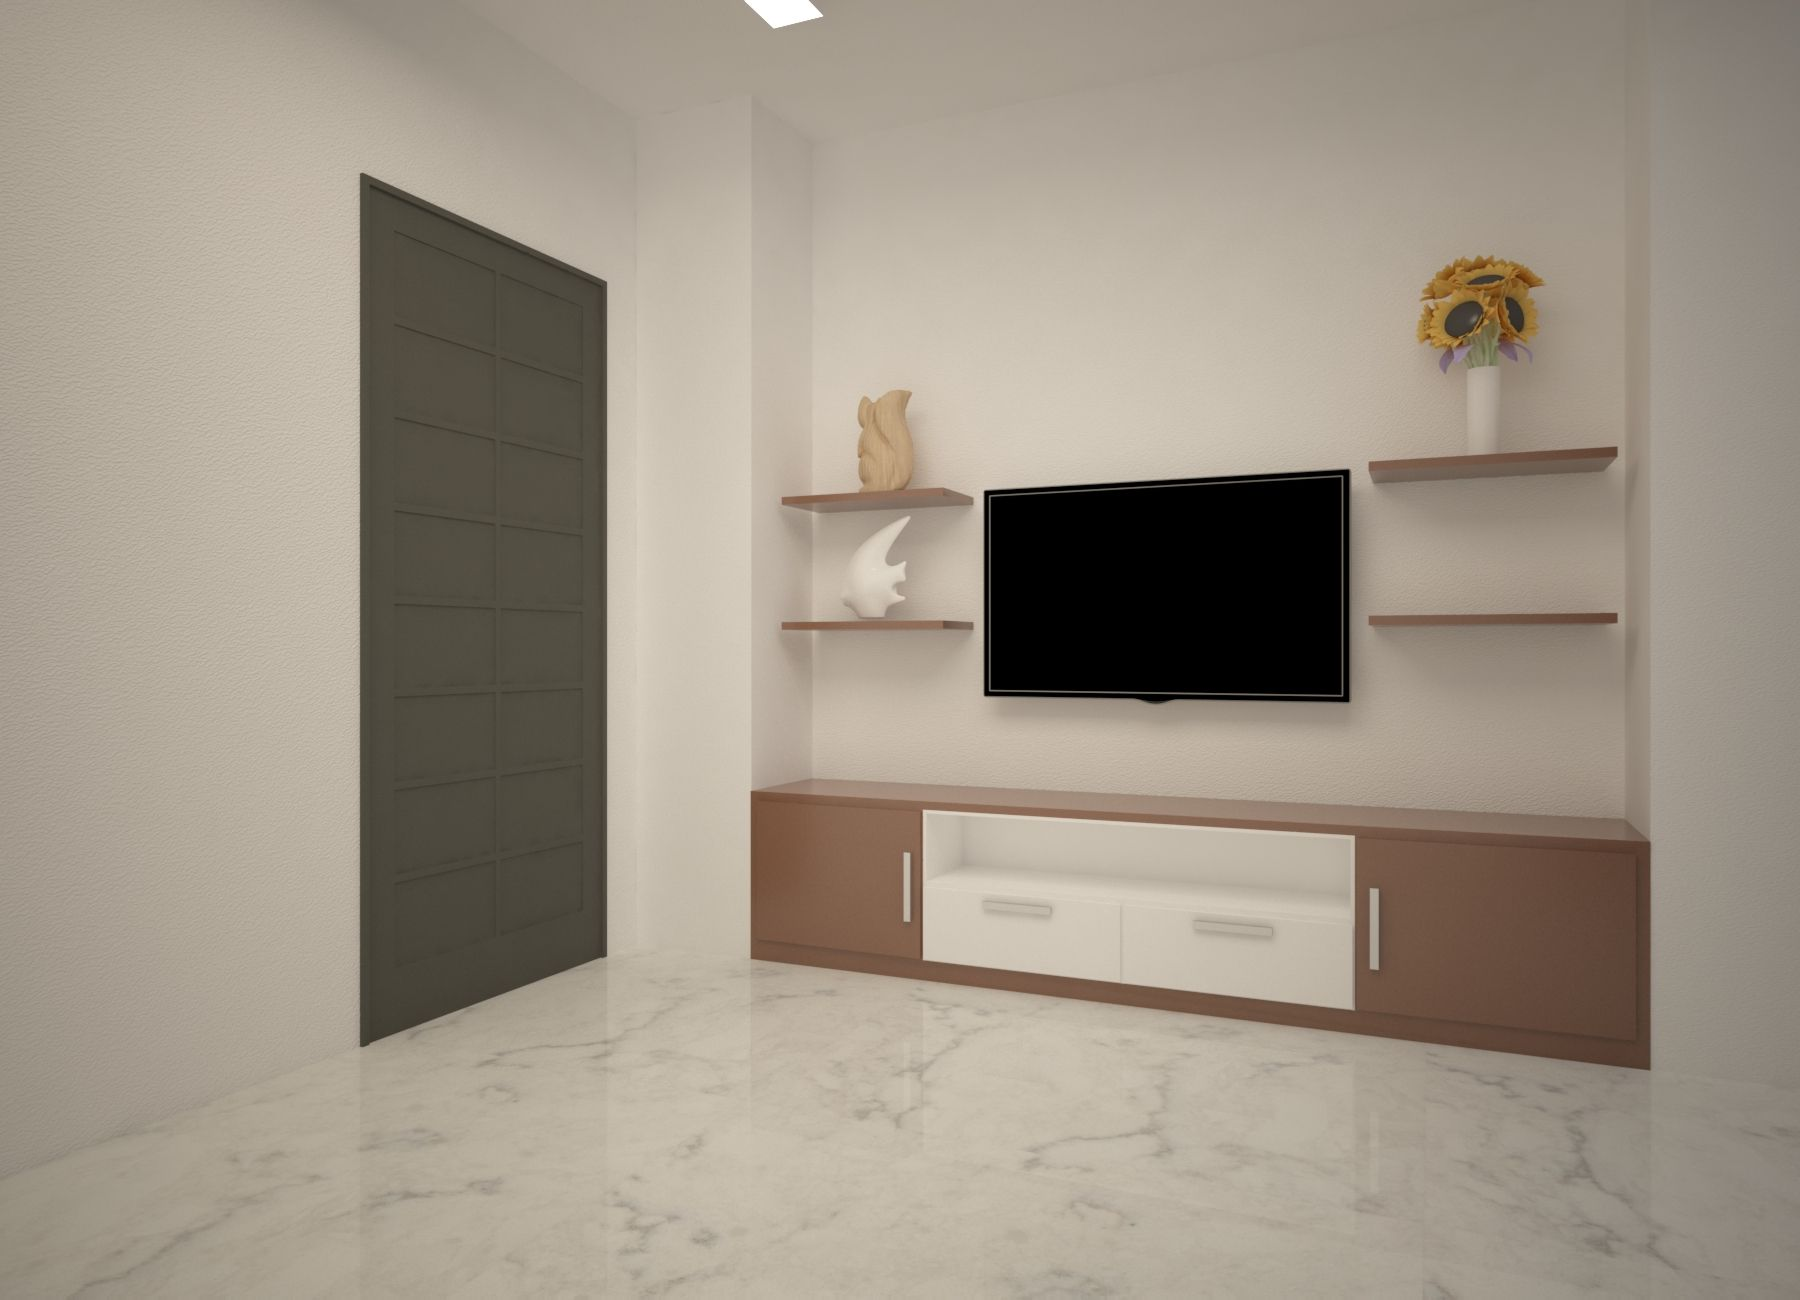 Tv Unit Collections For Sobha Dream Acres Client Where Our Top Interior Designers Use El Interior Design Companies Best Interior Design Top Interior Designers